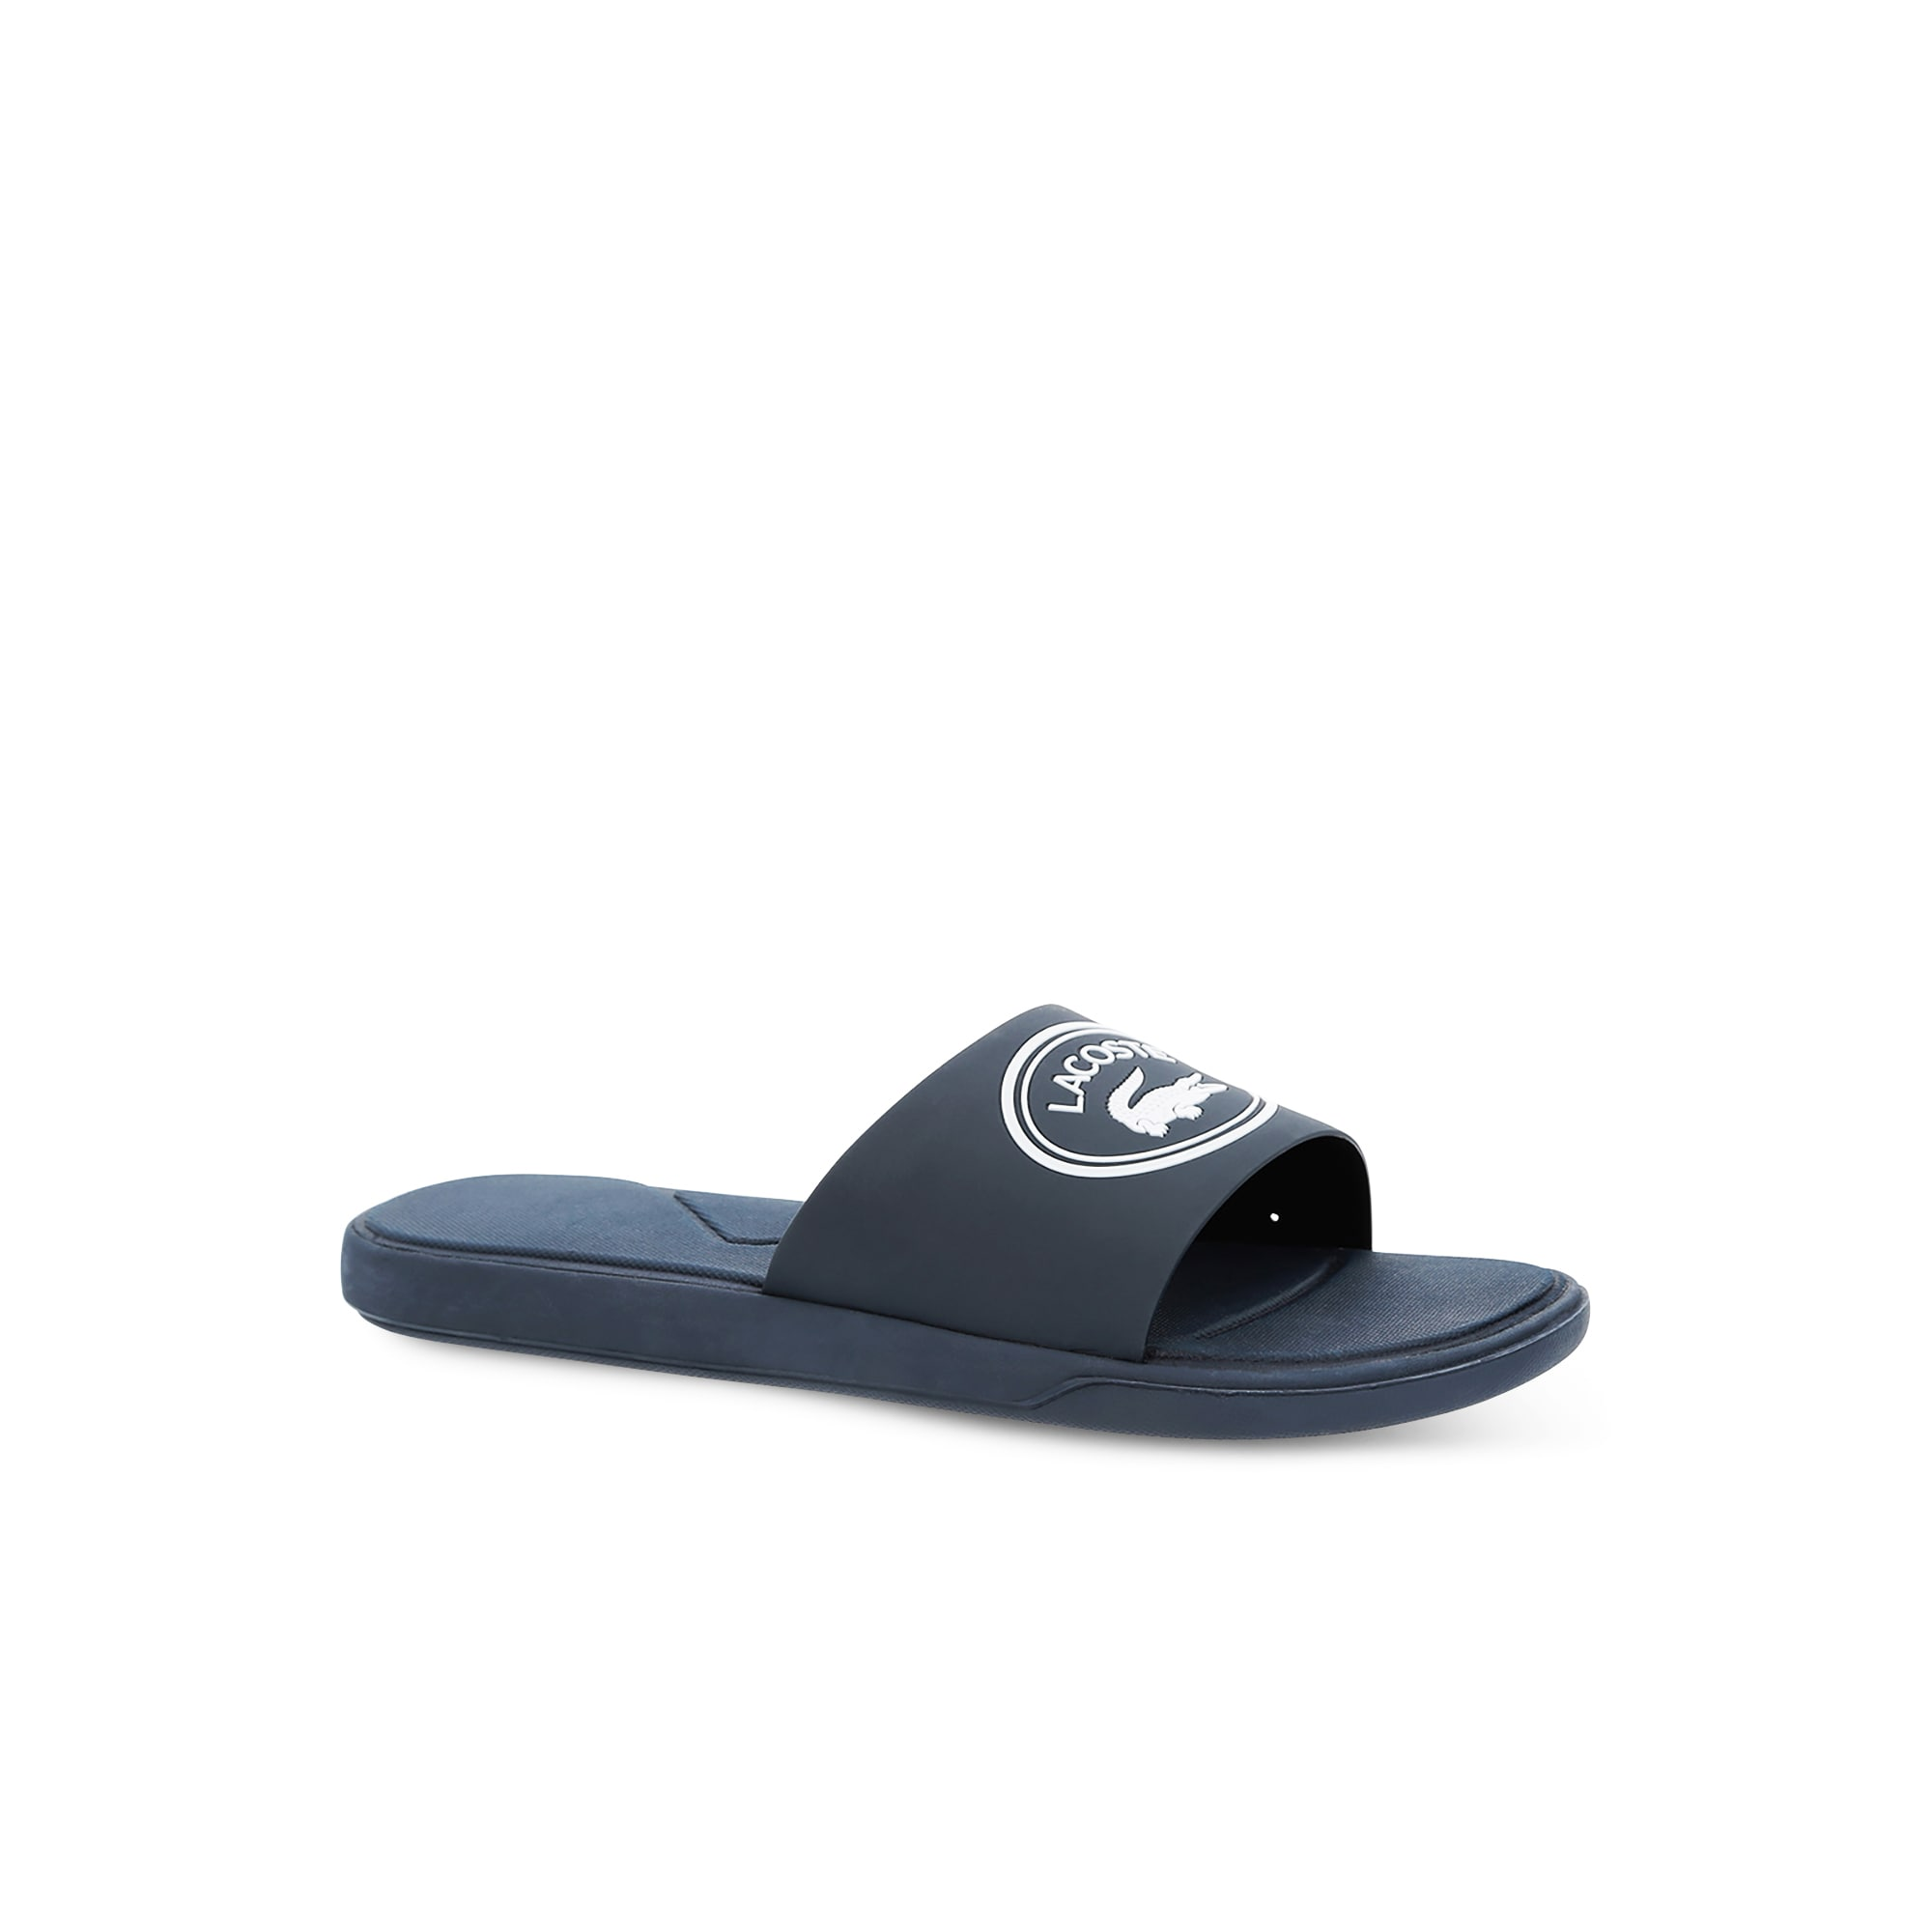 75c33e0703 Tongs | Chaussures Homme | LACOSTE